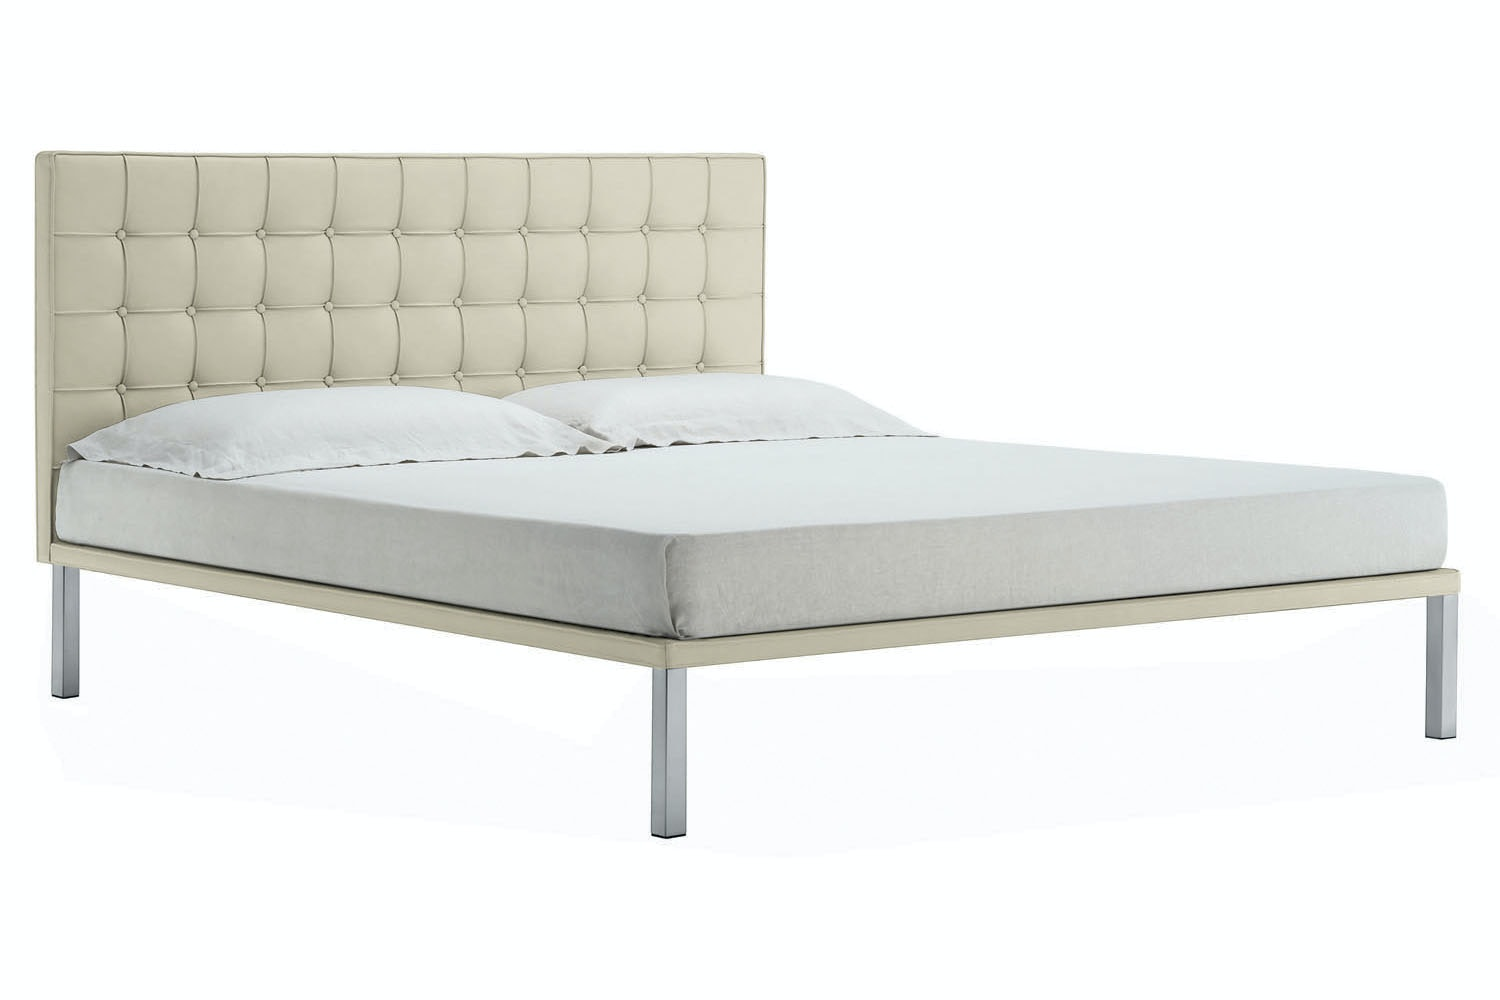 Caracalla Bed by Emaf Progetti for Zanotta